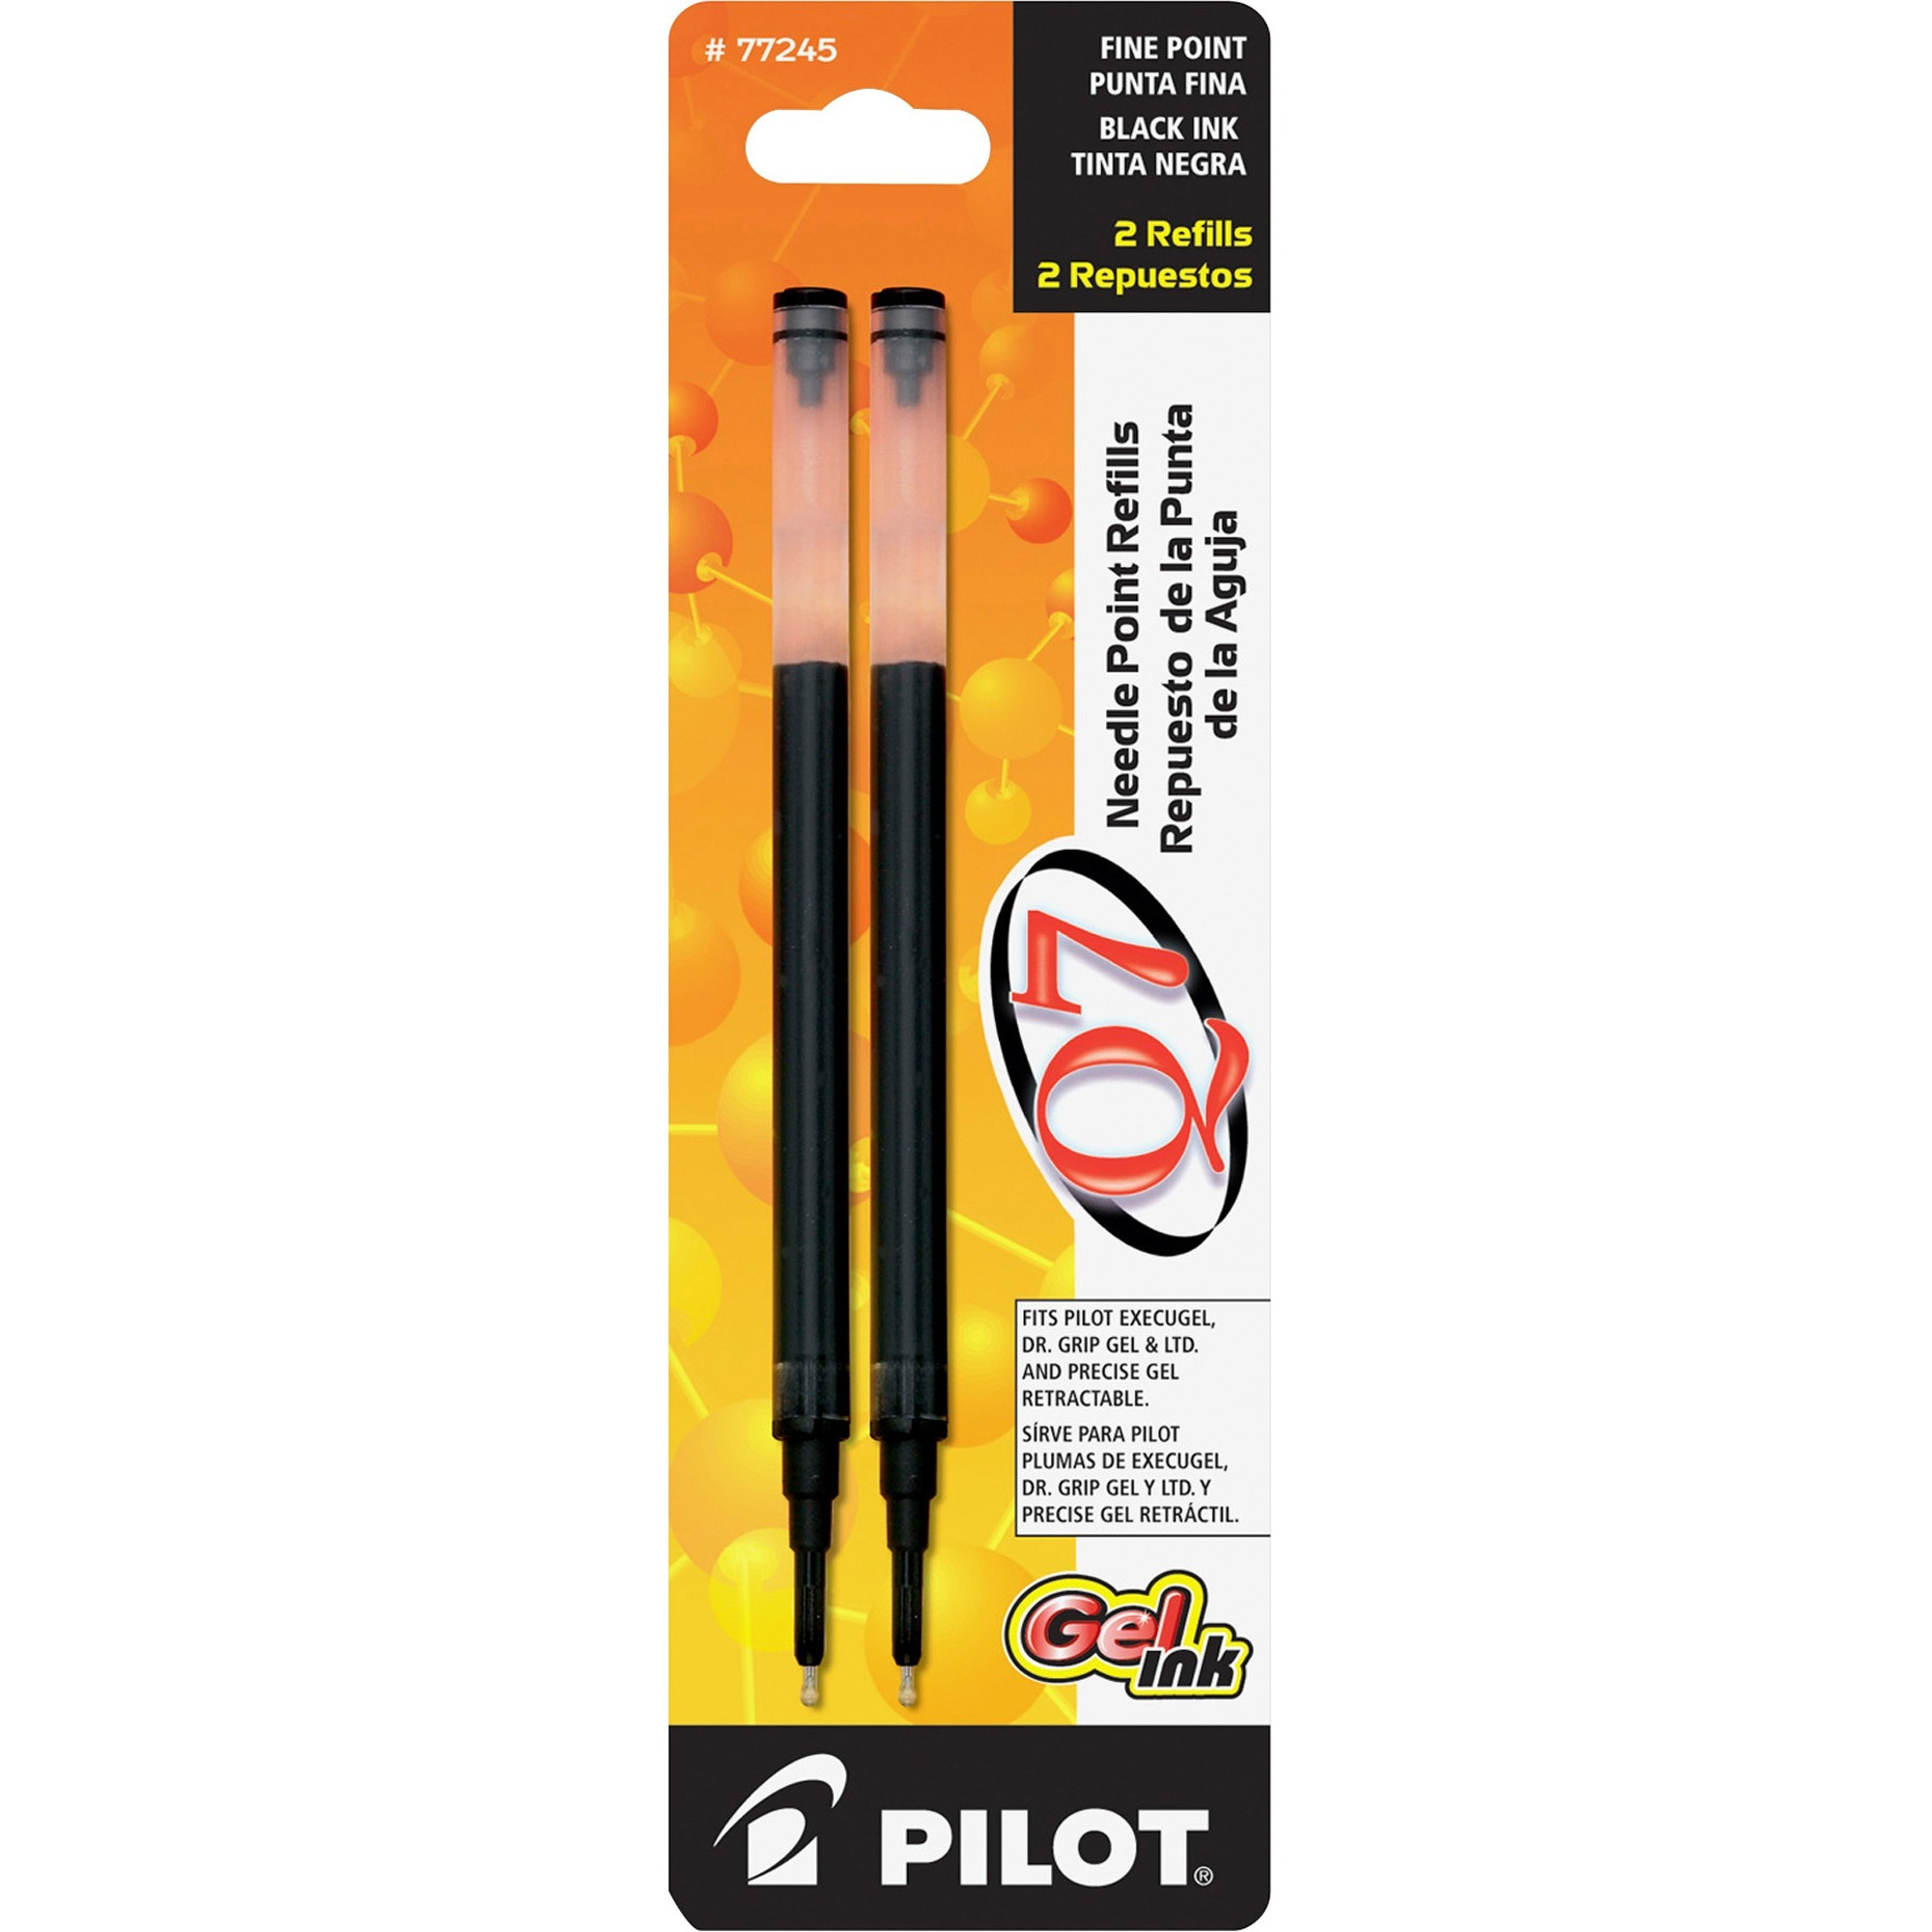 Pilot Q7 Retractable Needle Gel Refill, 2 / Pack (Quantity)